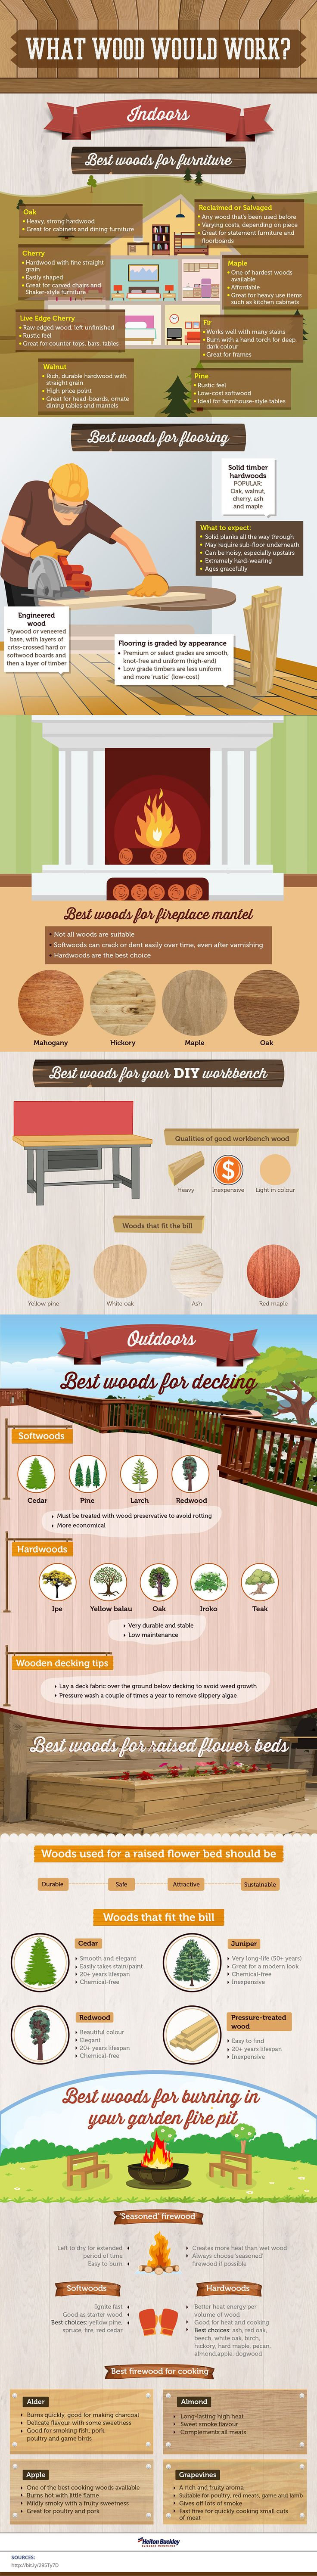 Which Wood is Best for Furniture, Flooring, Outdoors Infographic. Topic: carpenter, carpentry, woodworking, interior design, home improvement.